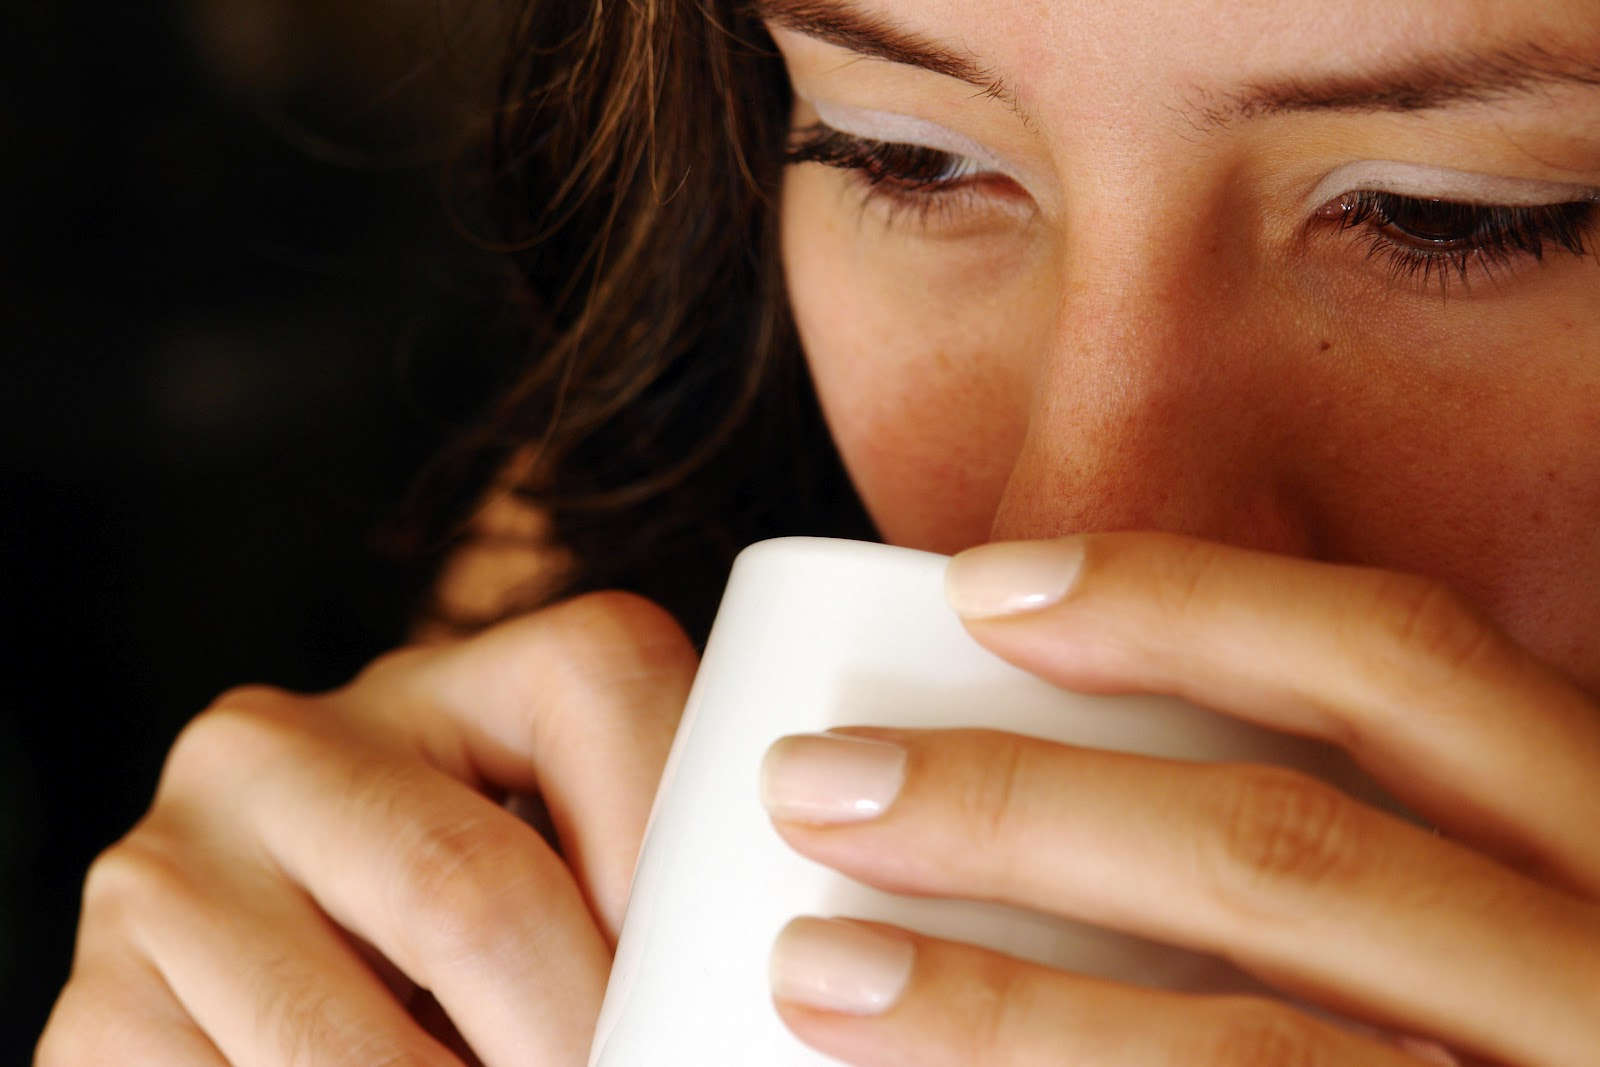 coffee site: COFFEE DRINKING DEPRESSION IN WOMEN